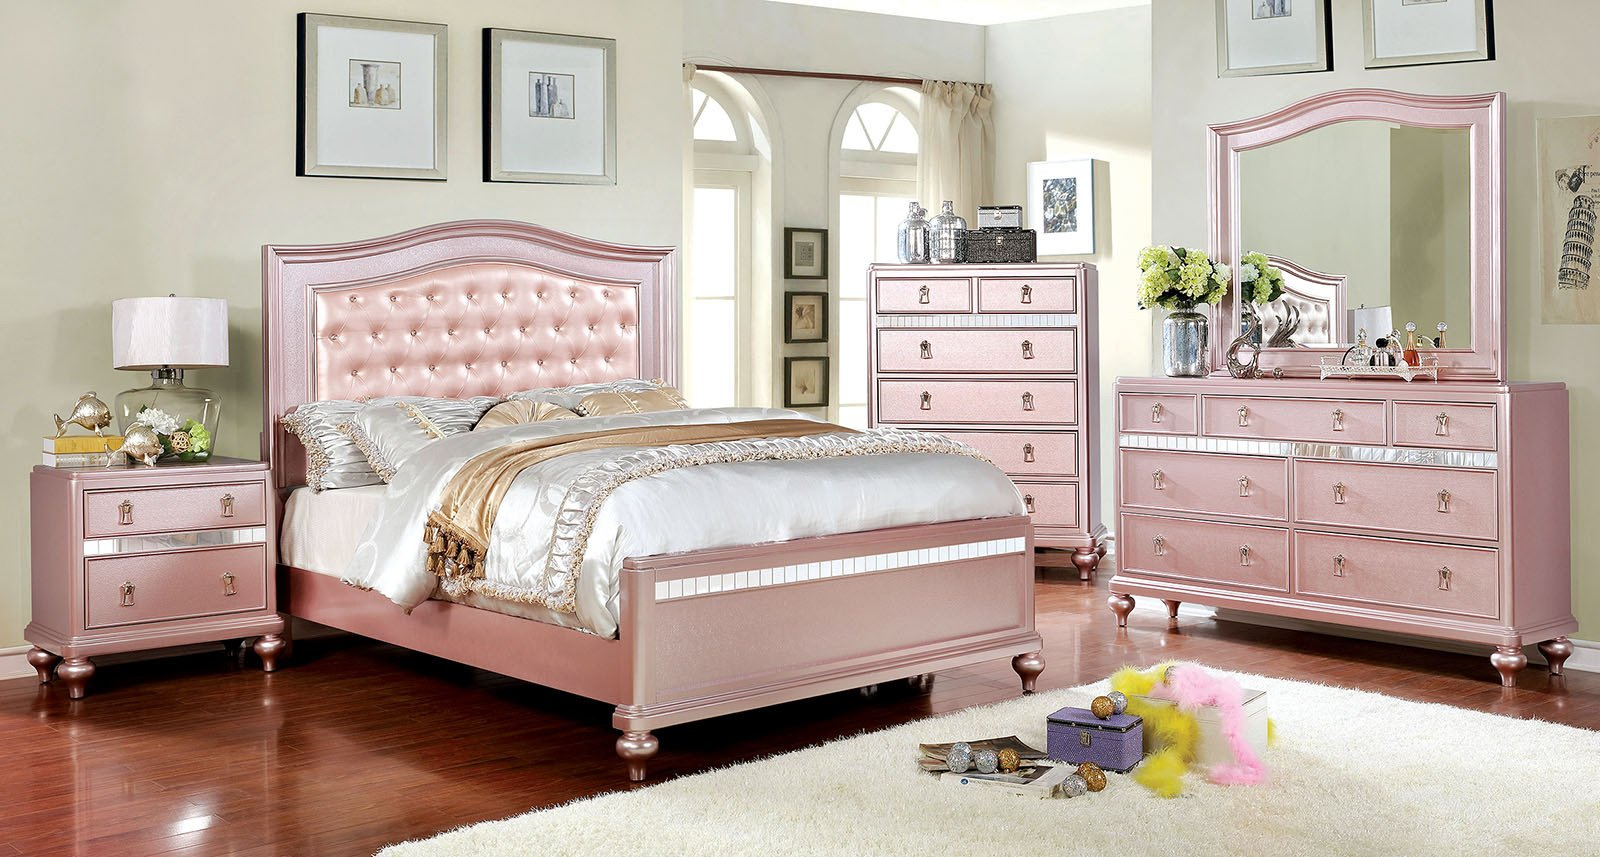 White Tufted Bedroom Set New Ariston Rose Gold Finish Cal King Size Bed with Mirrored Trim Jeweled button Tufted Padded Leather Headboard